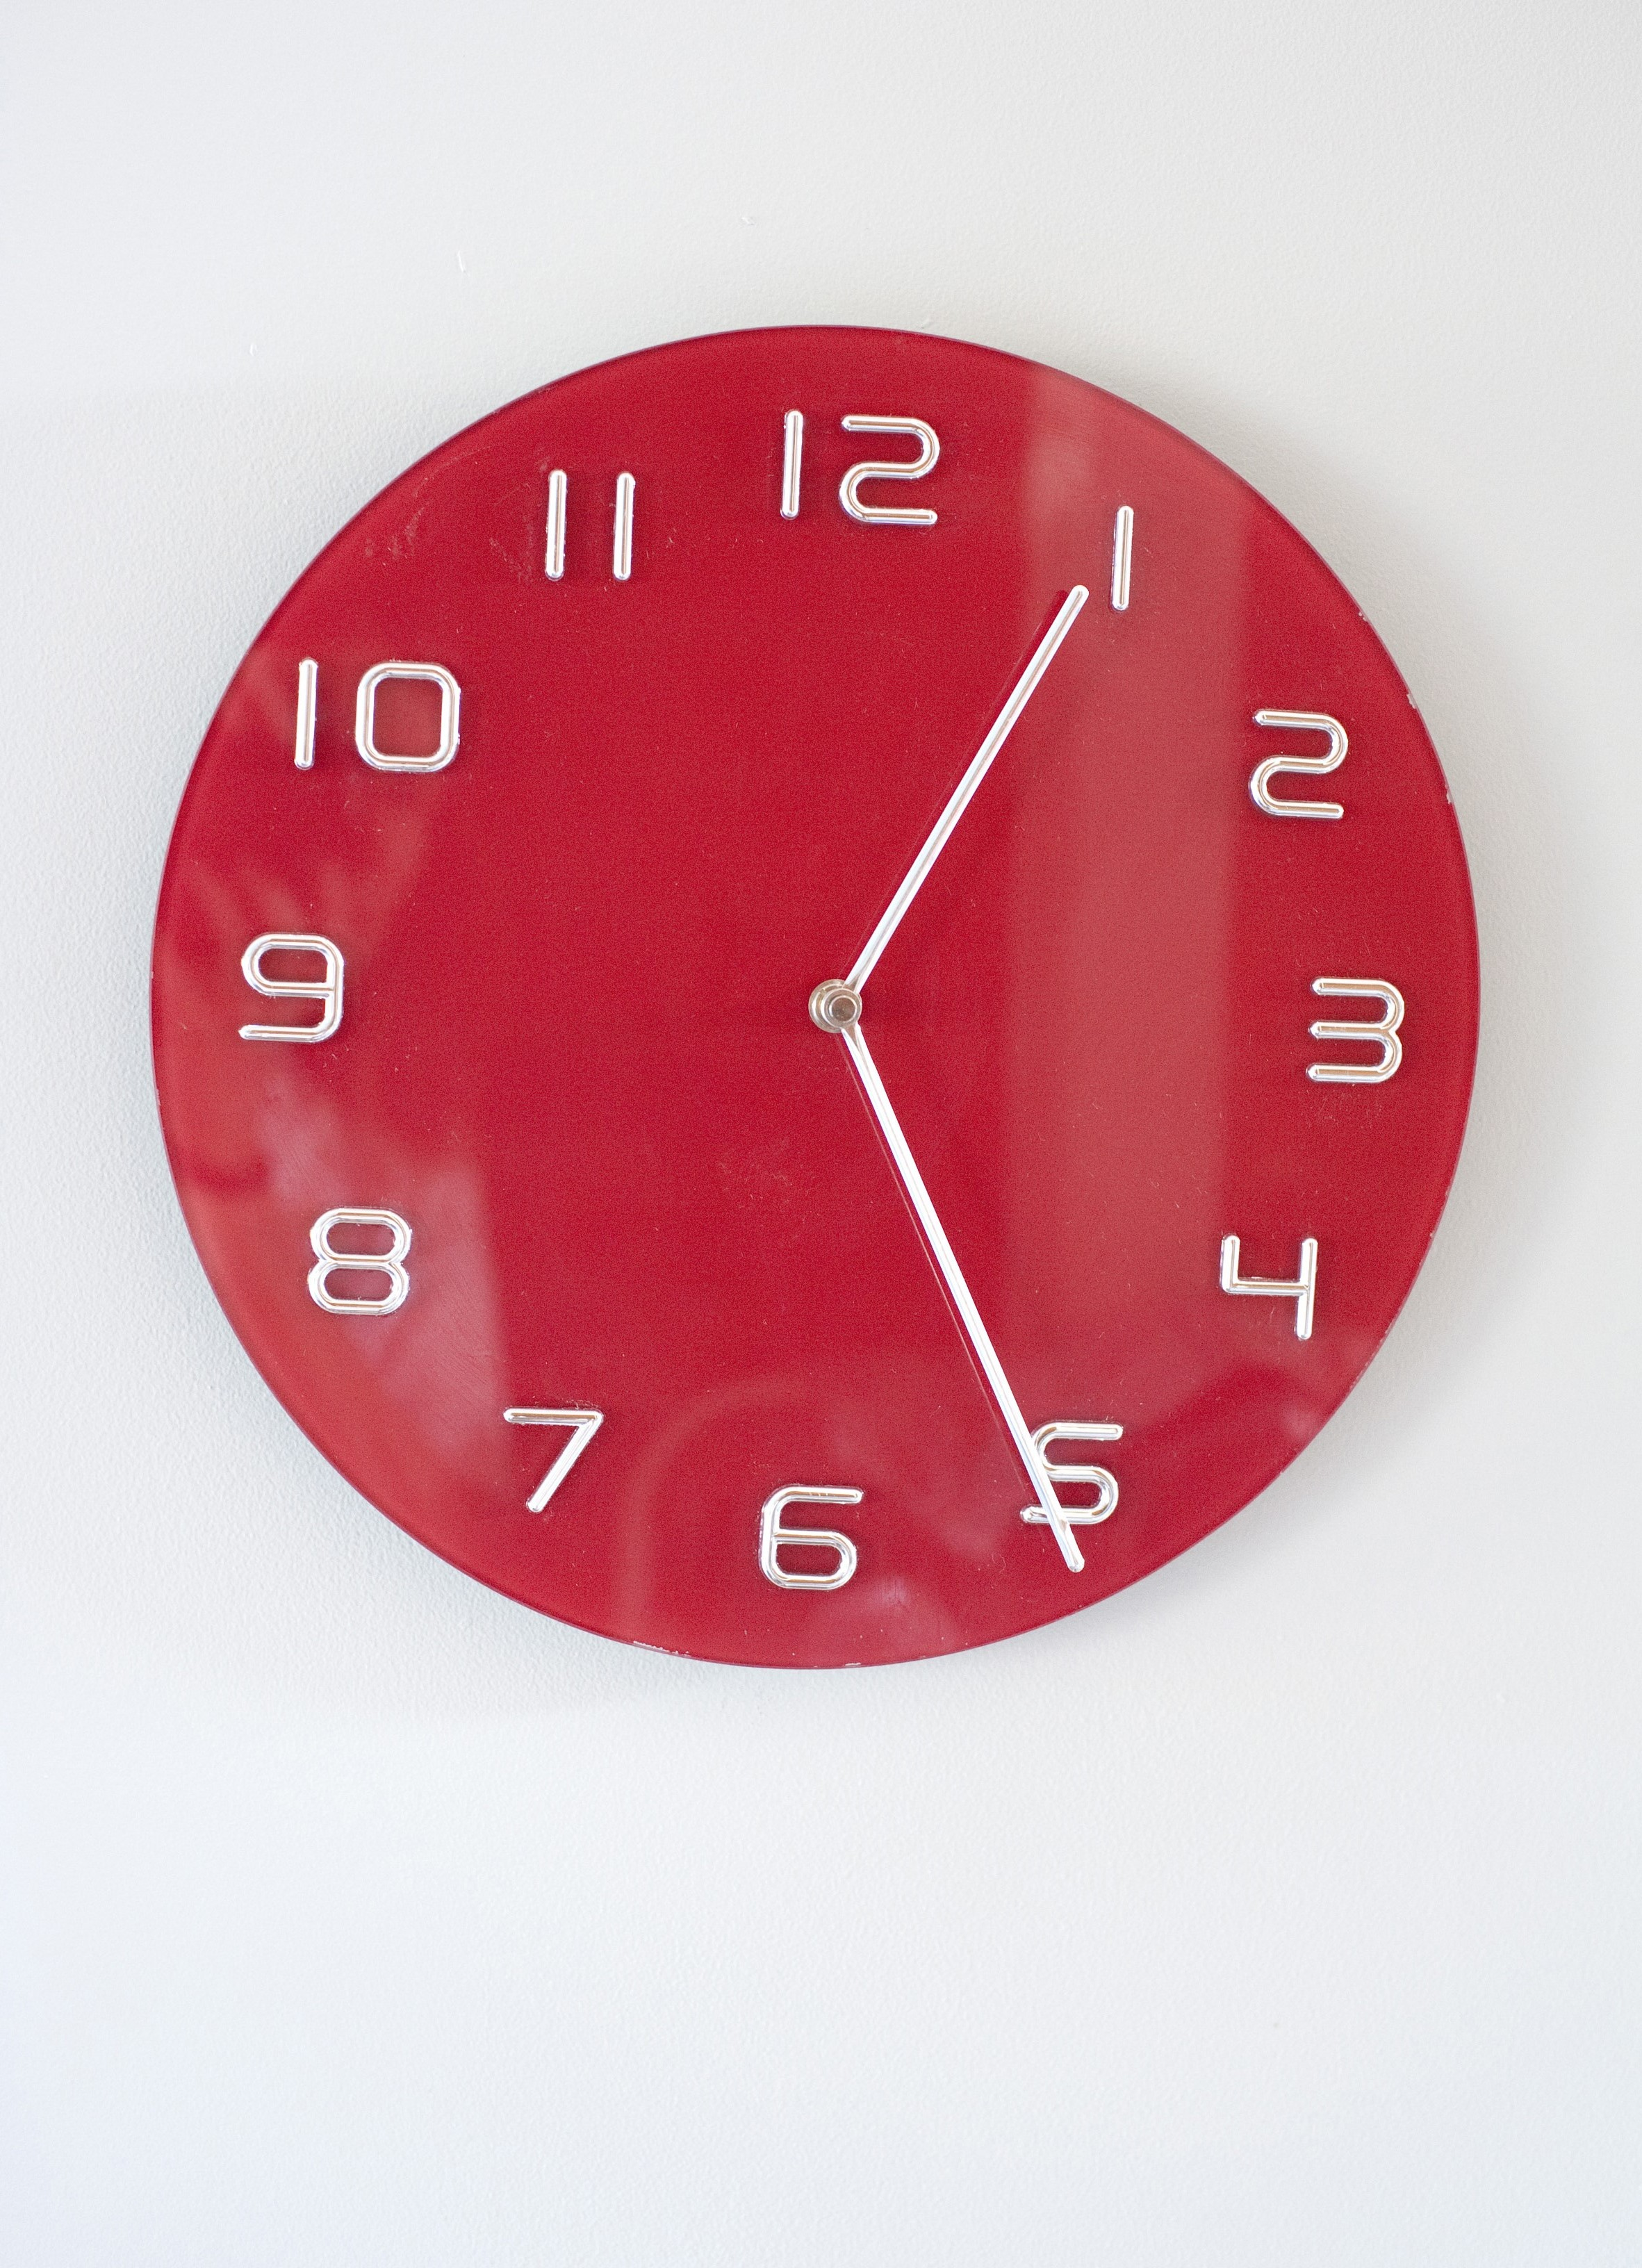 Modern simple circular red clock with Arabic numerals mounted on a white wall with copyspace